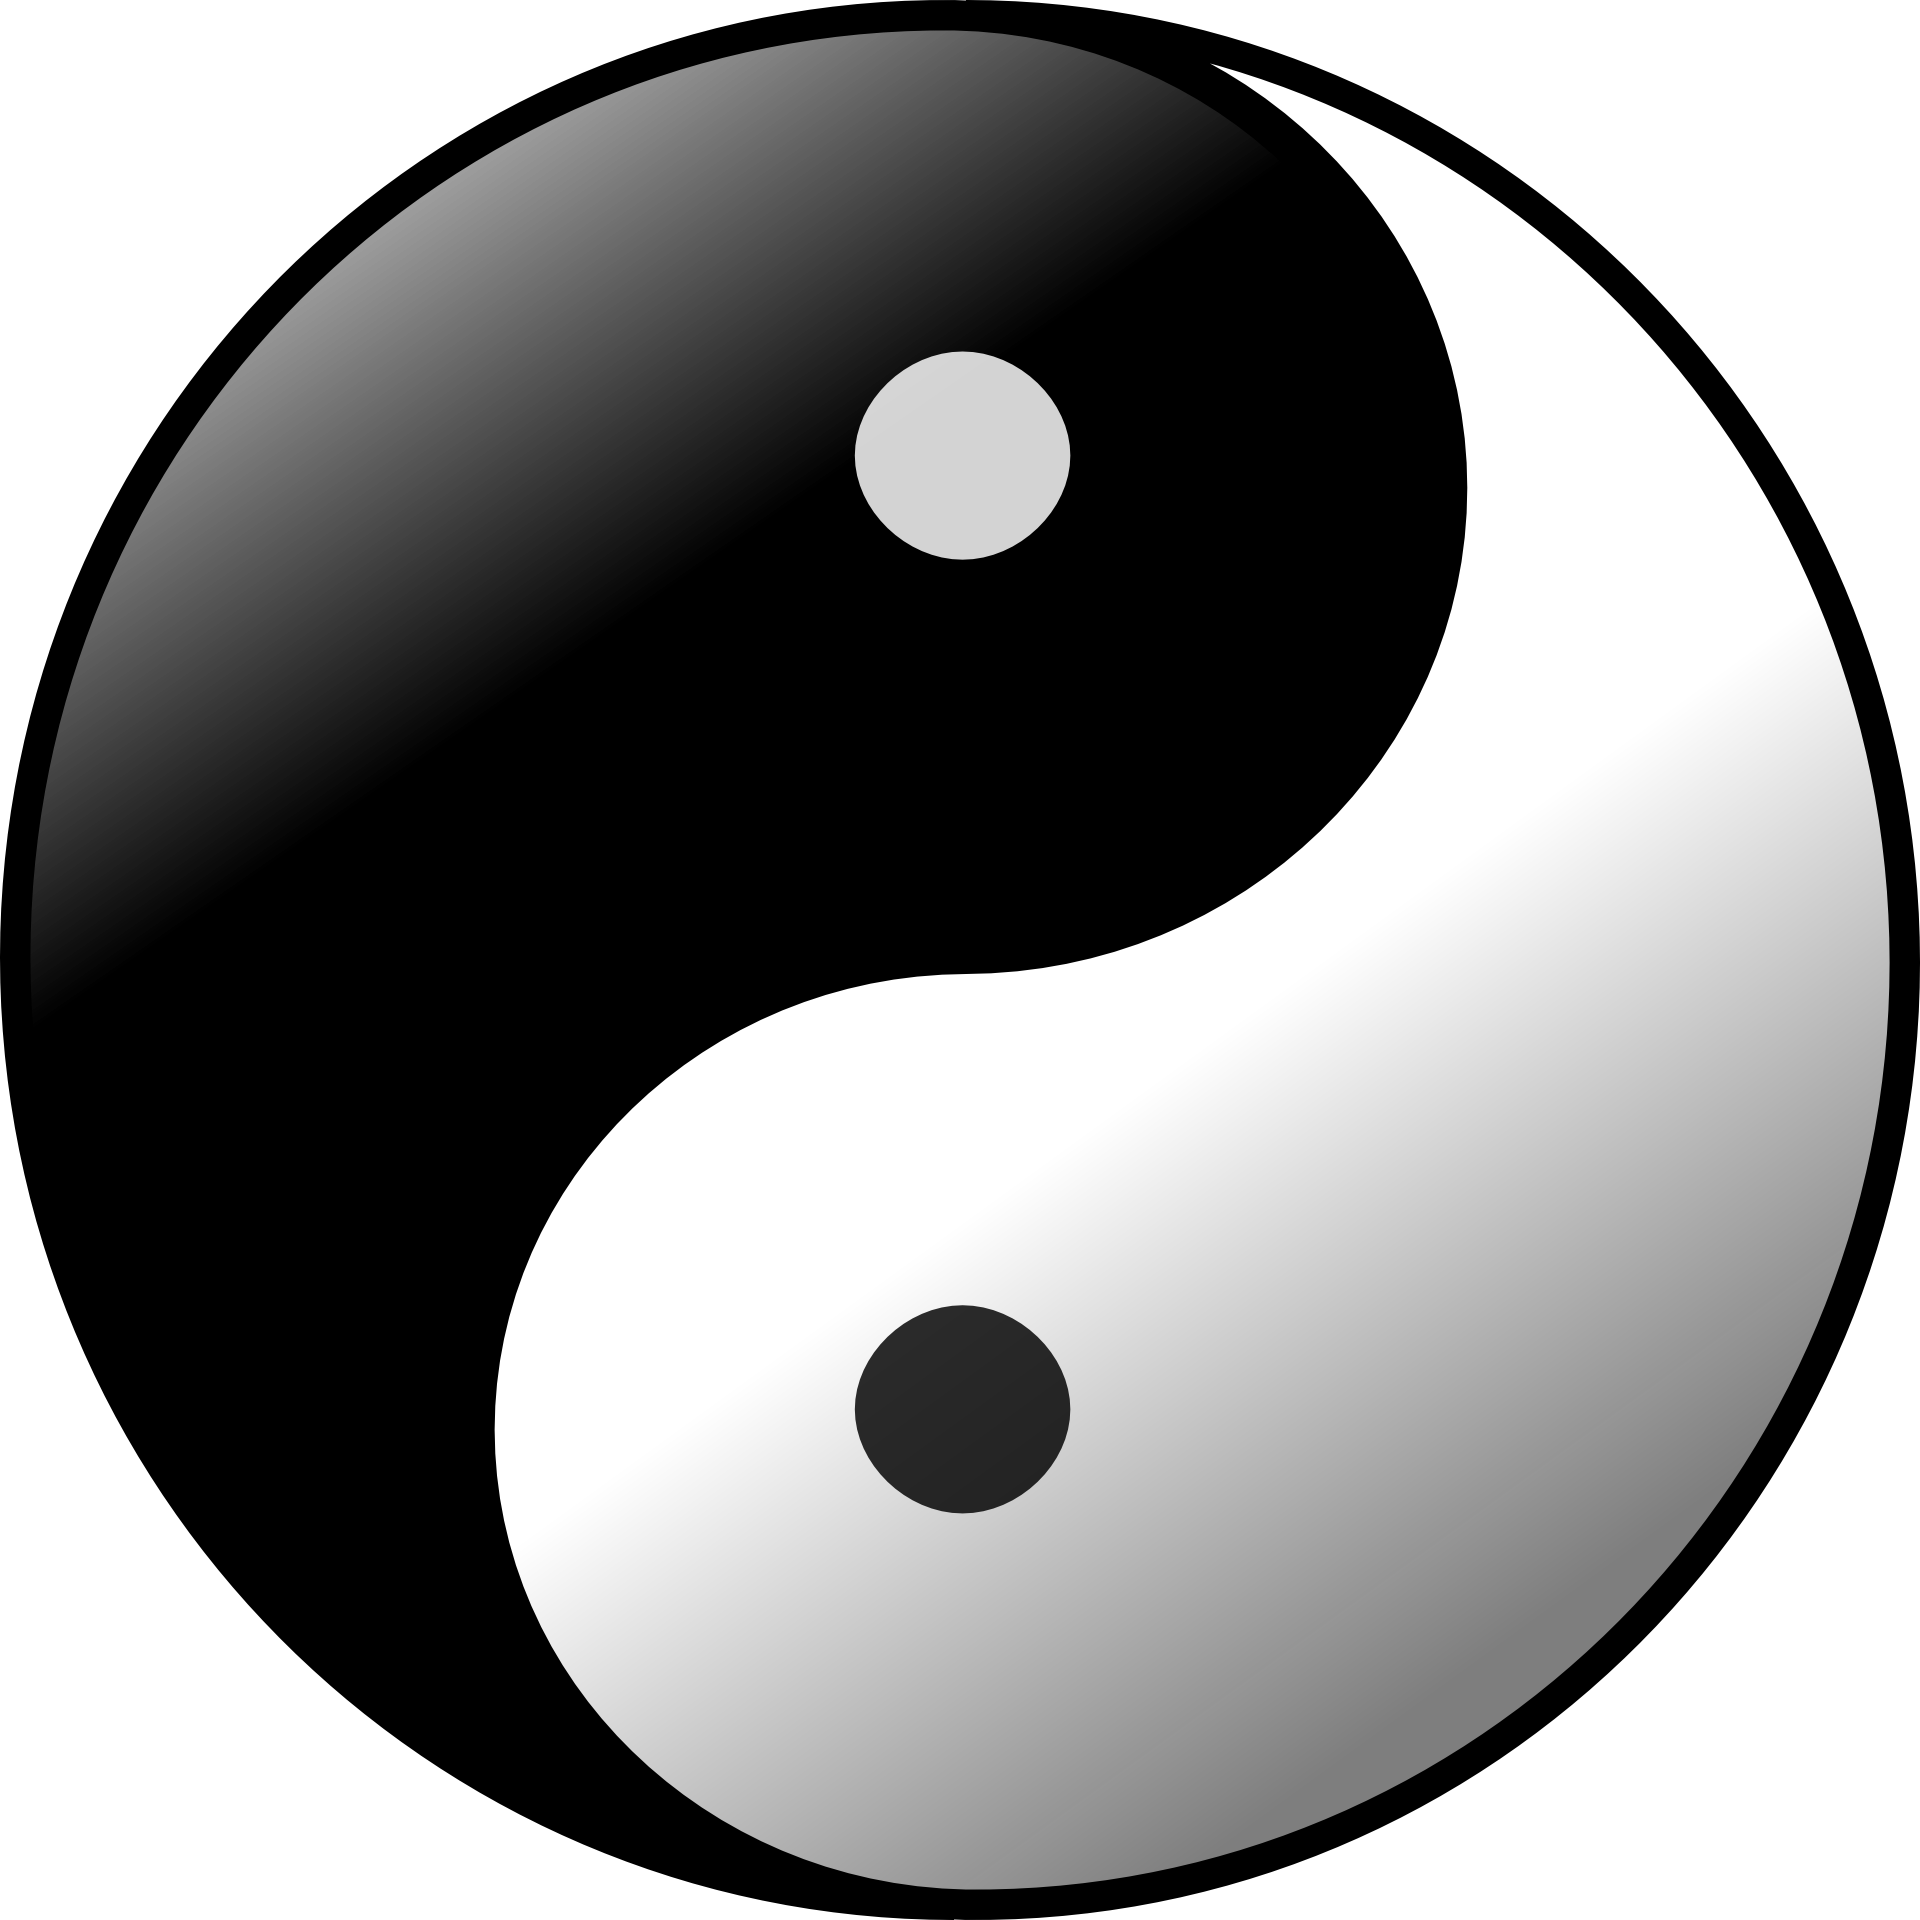 yin yang is universal symbol of shadow work